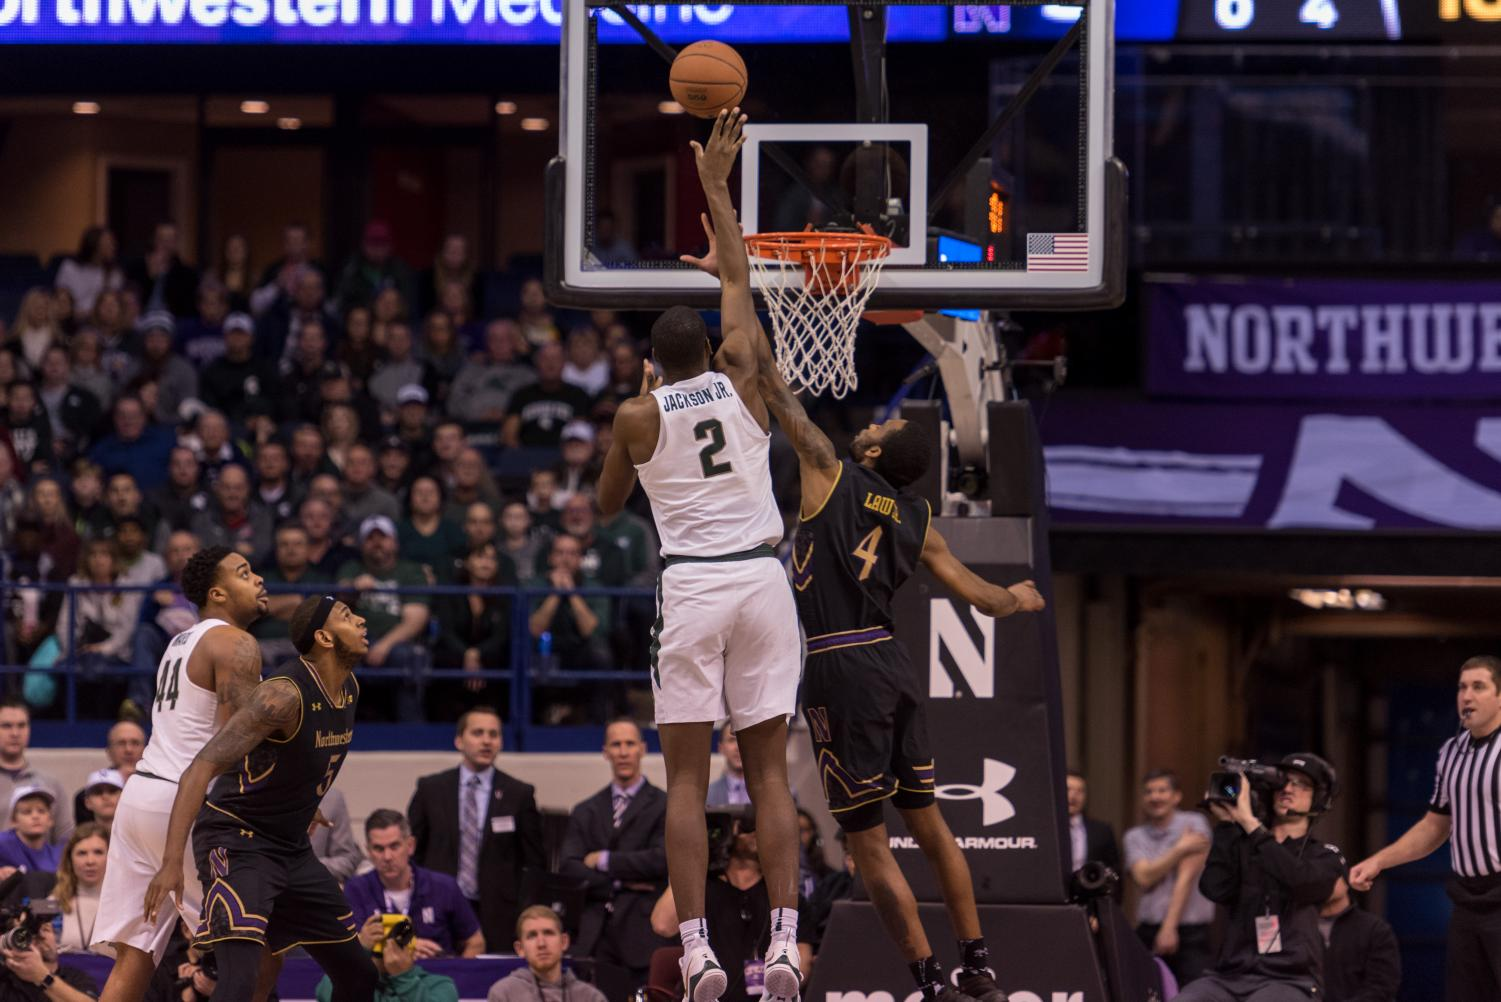 Michigan State's Jaron Jackson goes up for a shot. The Spartans' star-studded cast of players helped it rally back against Northwestern on Saturday.